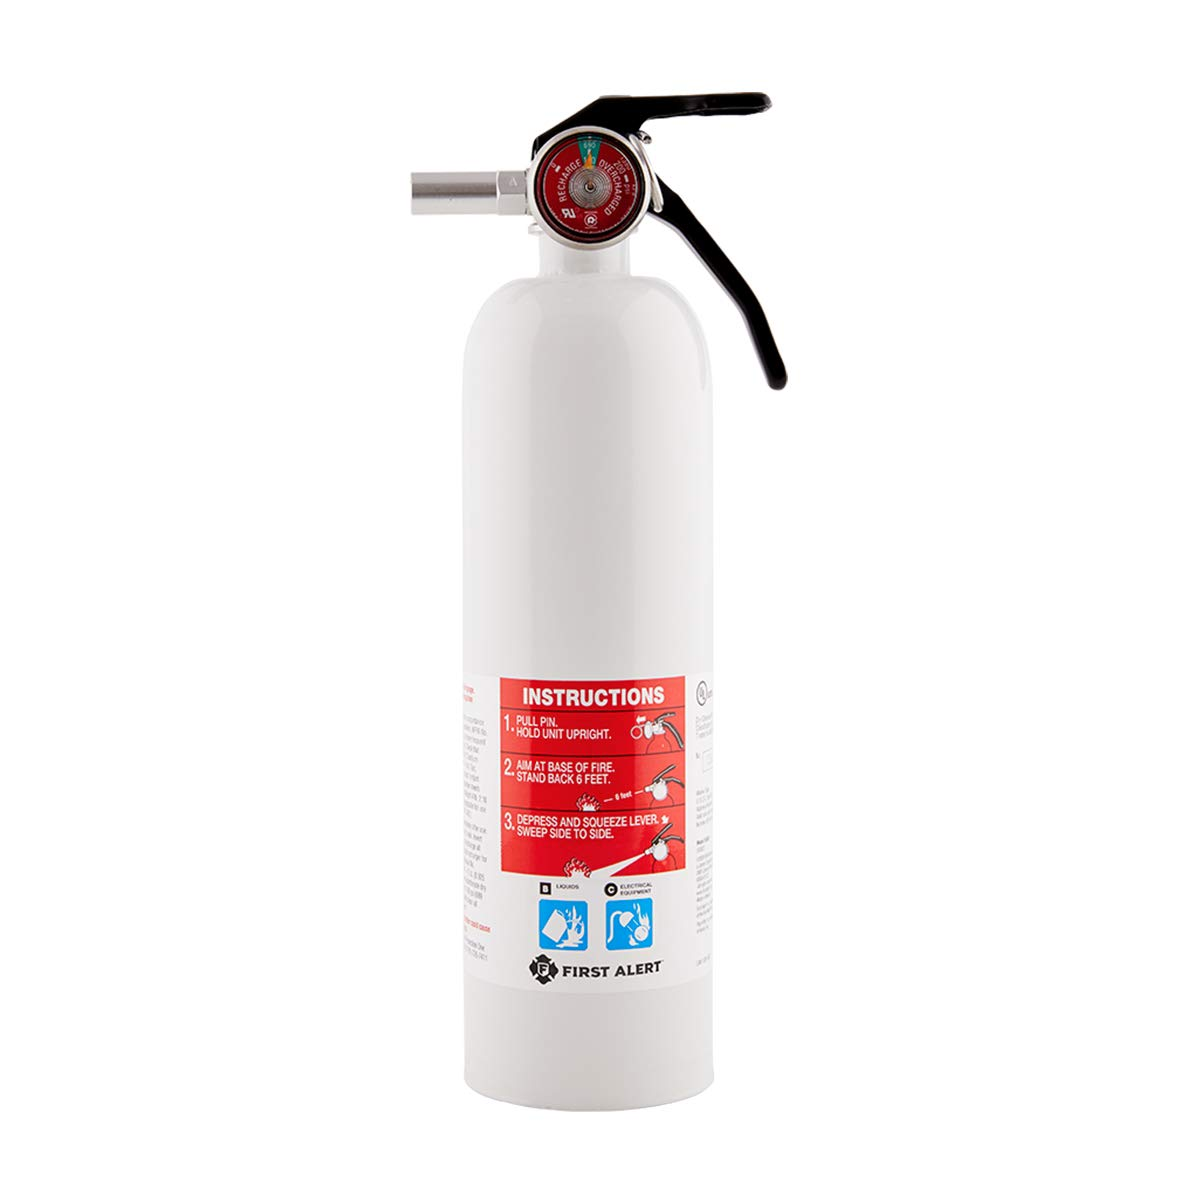 First Alert Fire Extinguisher | Recreation Vehicle and Marine Fire Extinguisher, White, Rechargeable, REC5 by First Alert